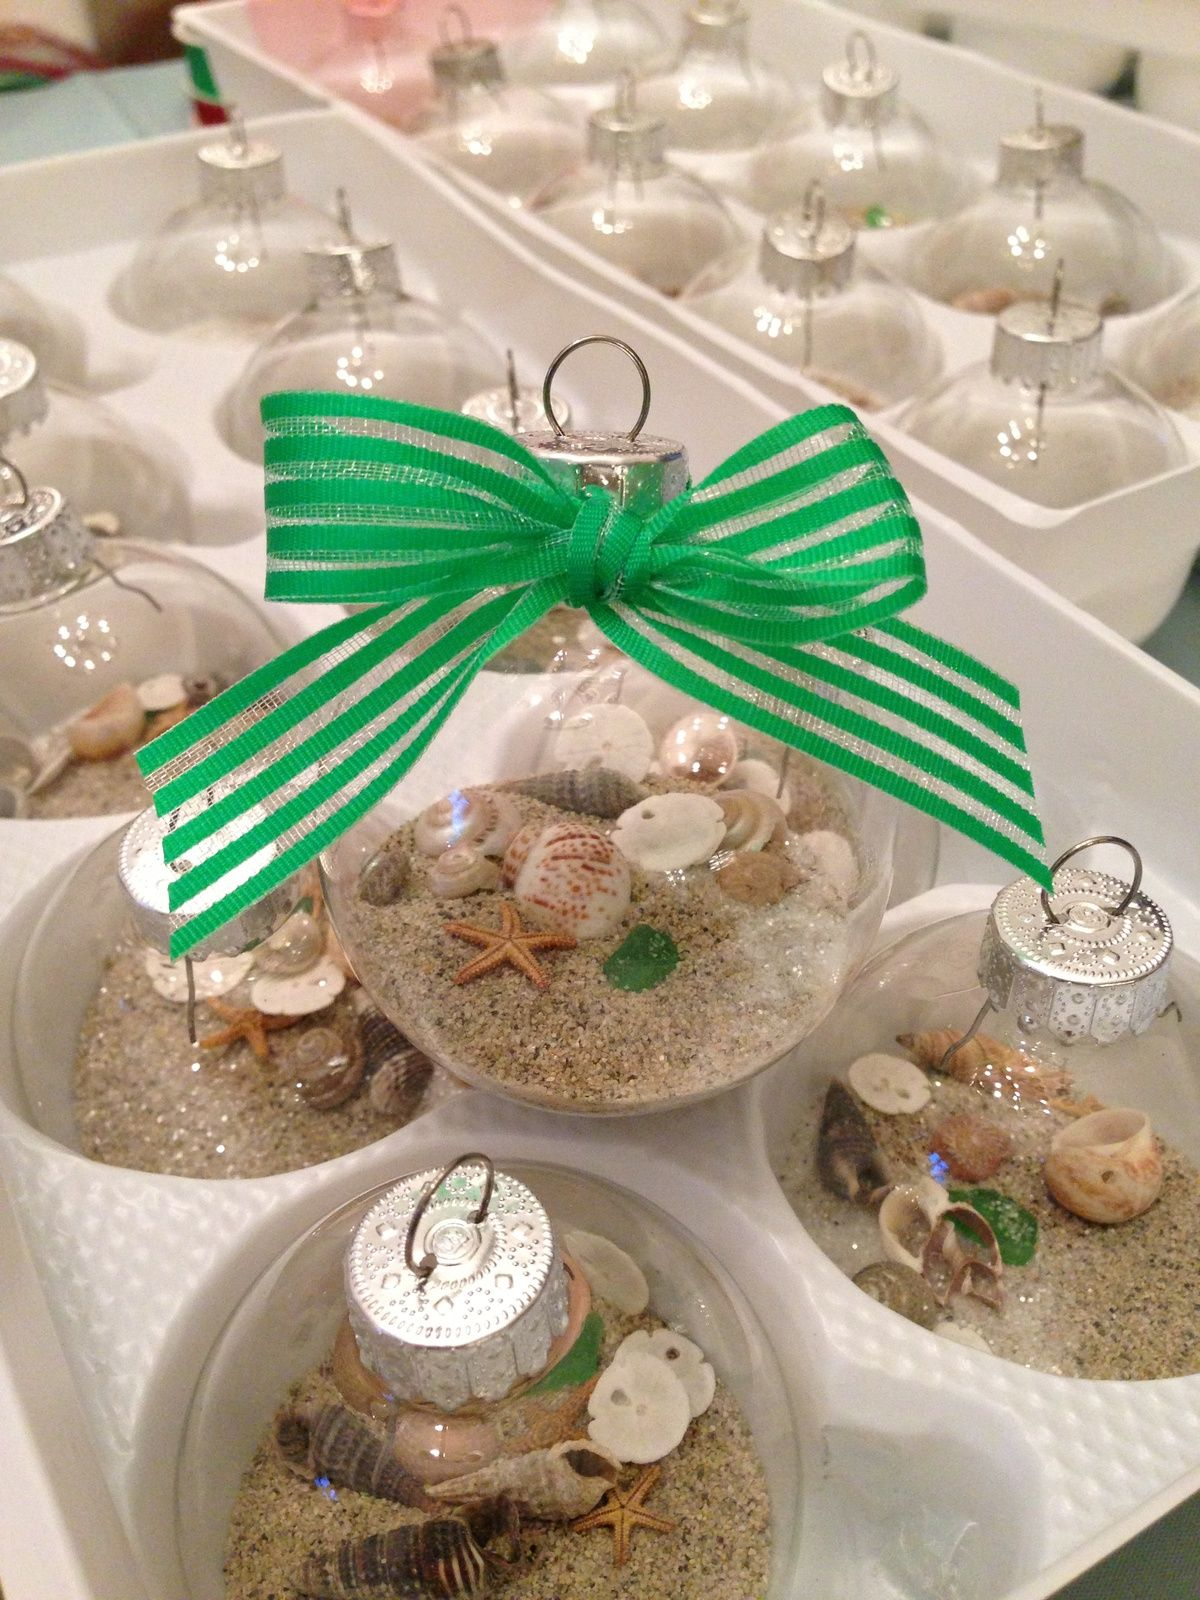 pin by suelyn hobot-rivera on craft ideas | pinterest | christmas in